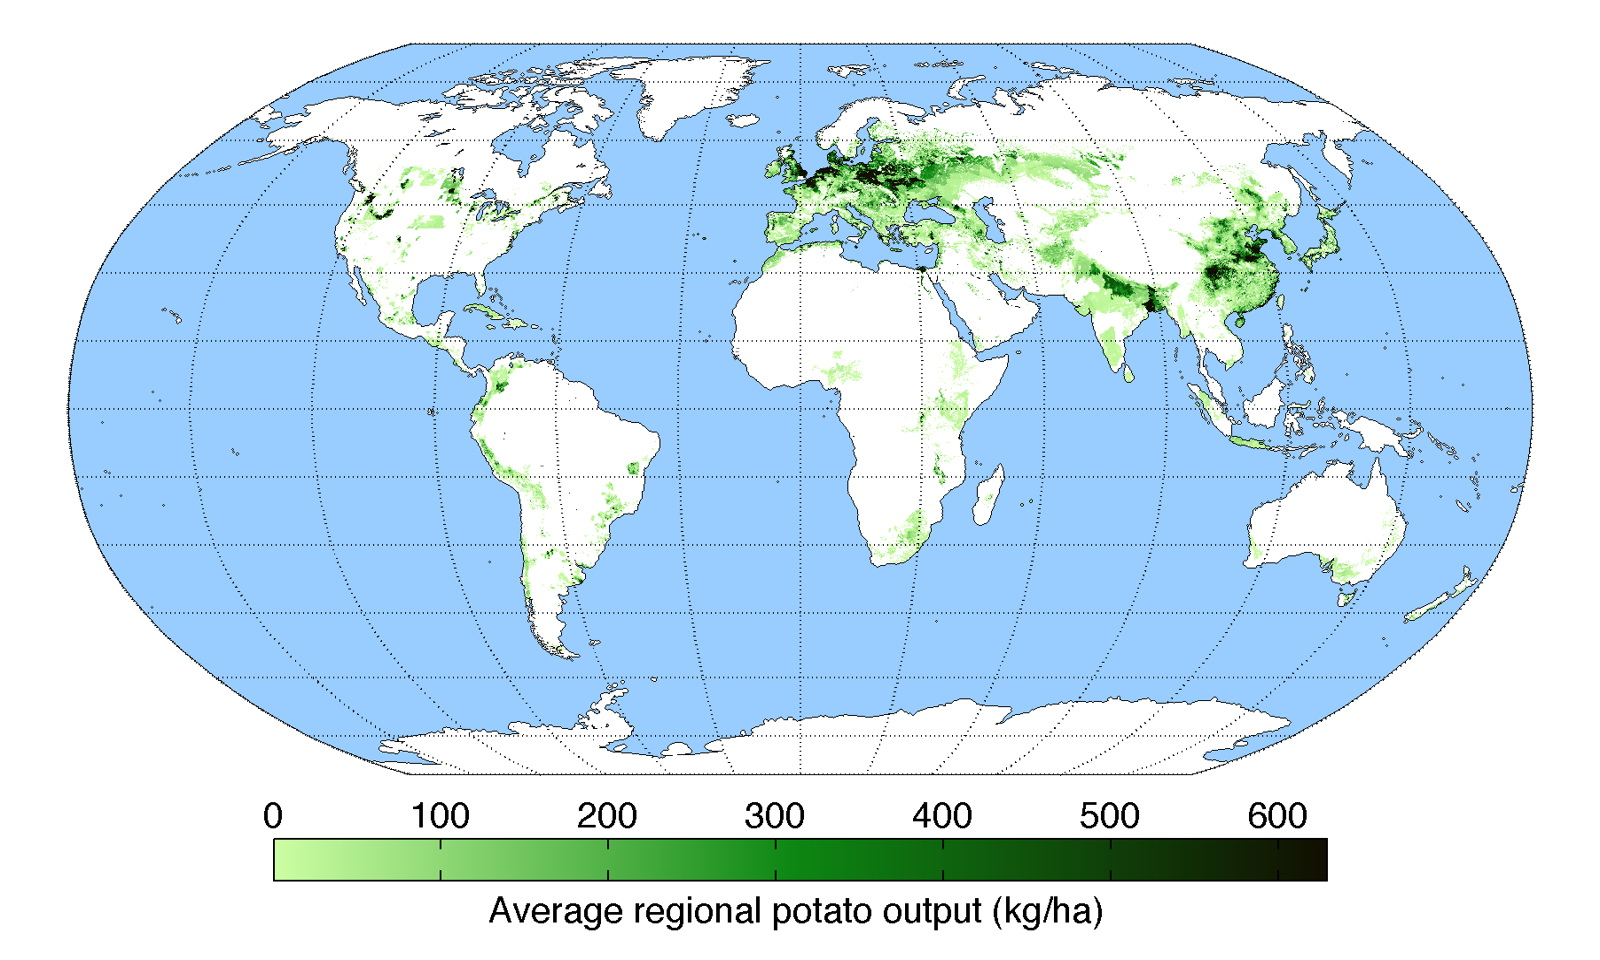 Average regional potato output